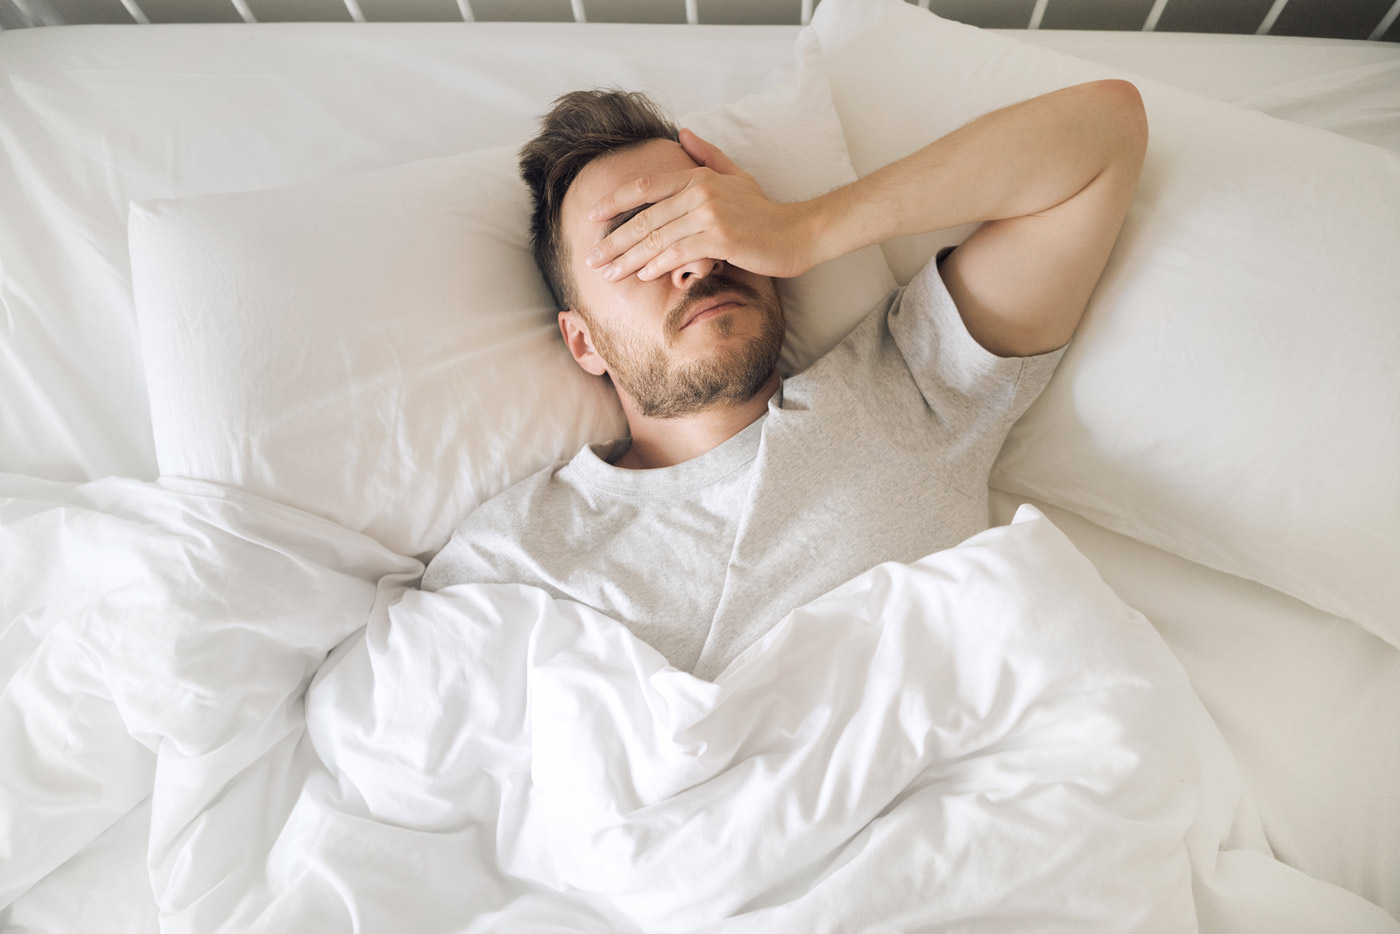 Man laying in white bed sheets with hand over his face